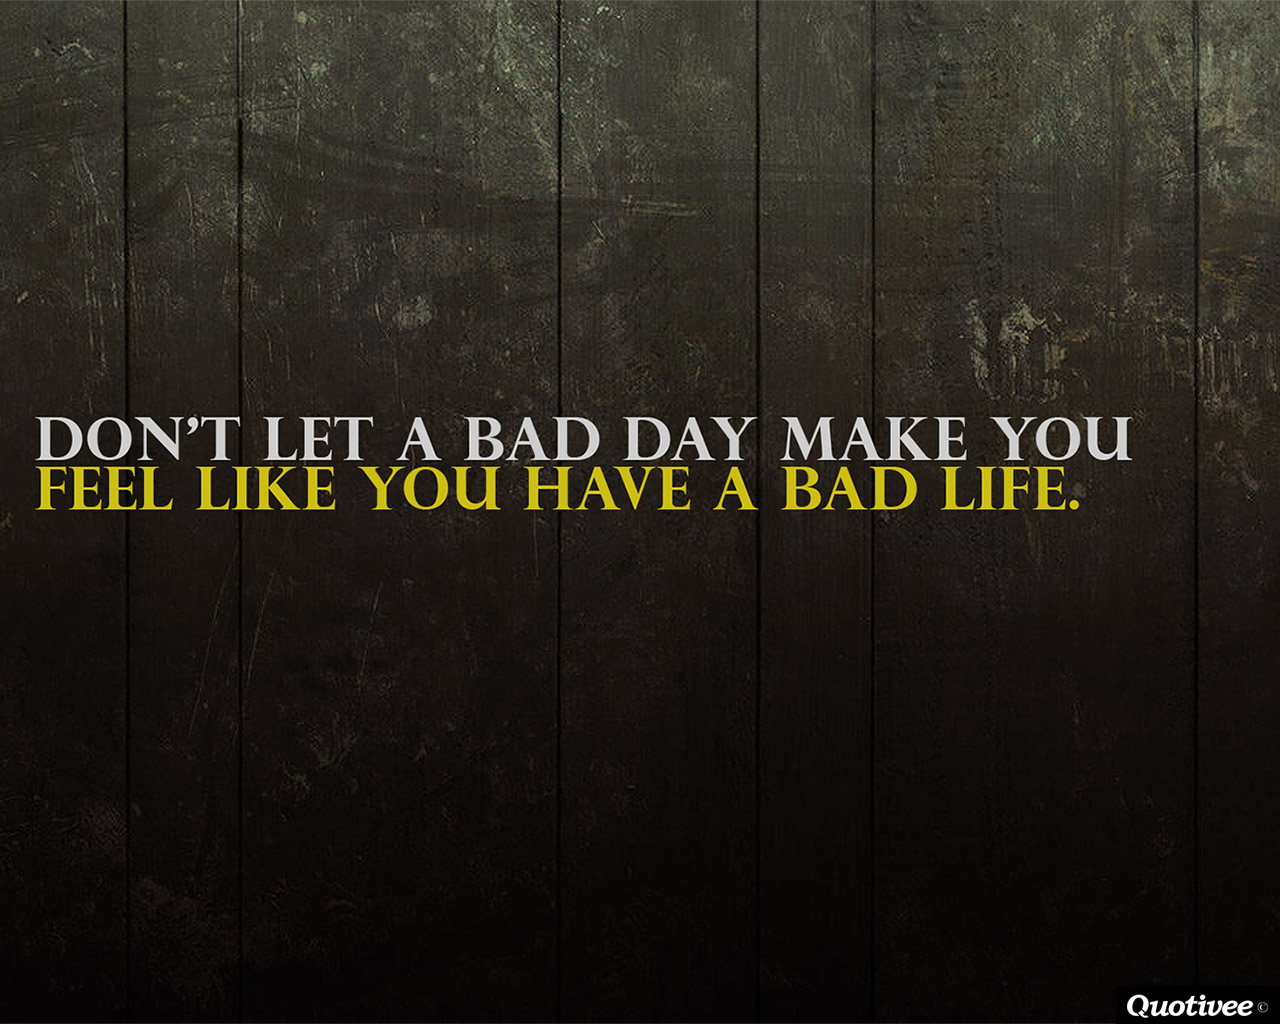 A Bad Day - Inspirational Quotes | Quotivee